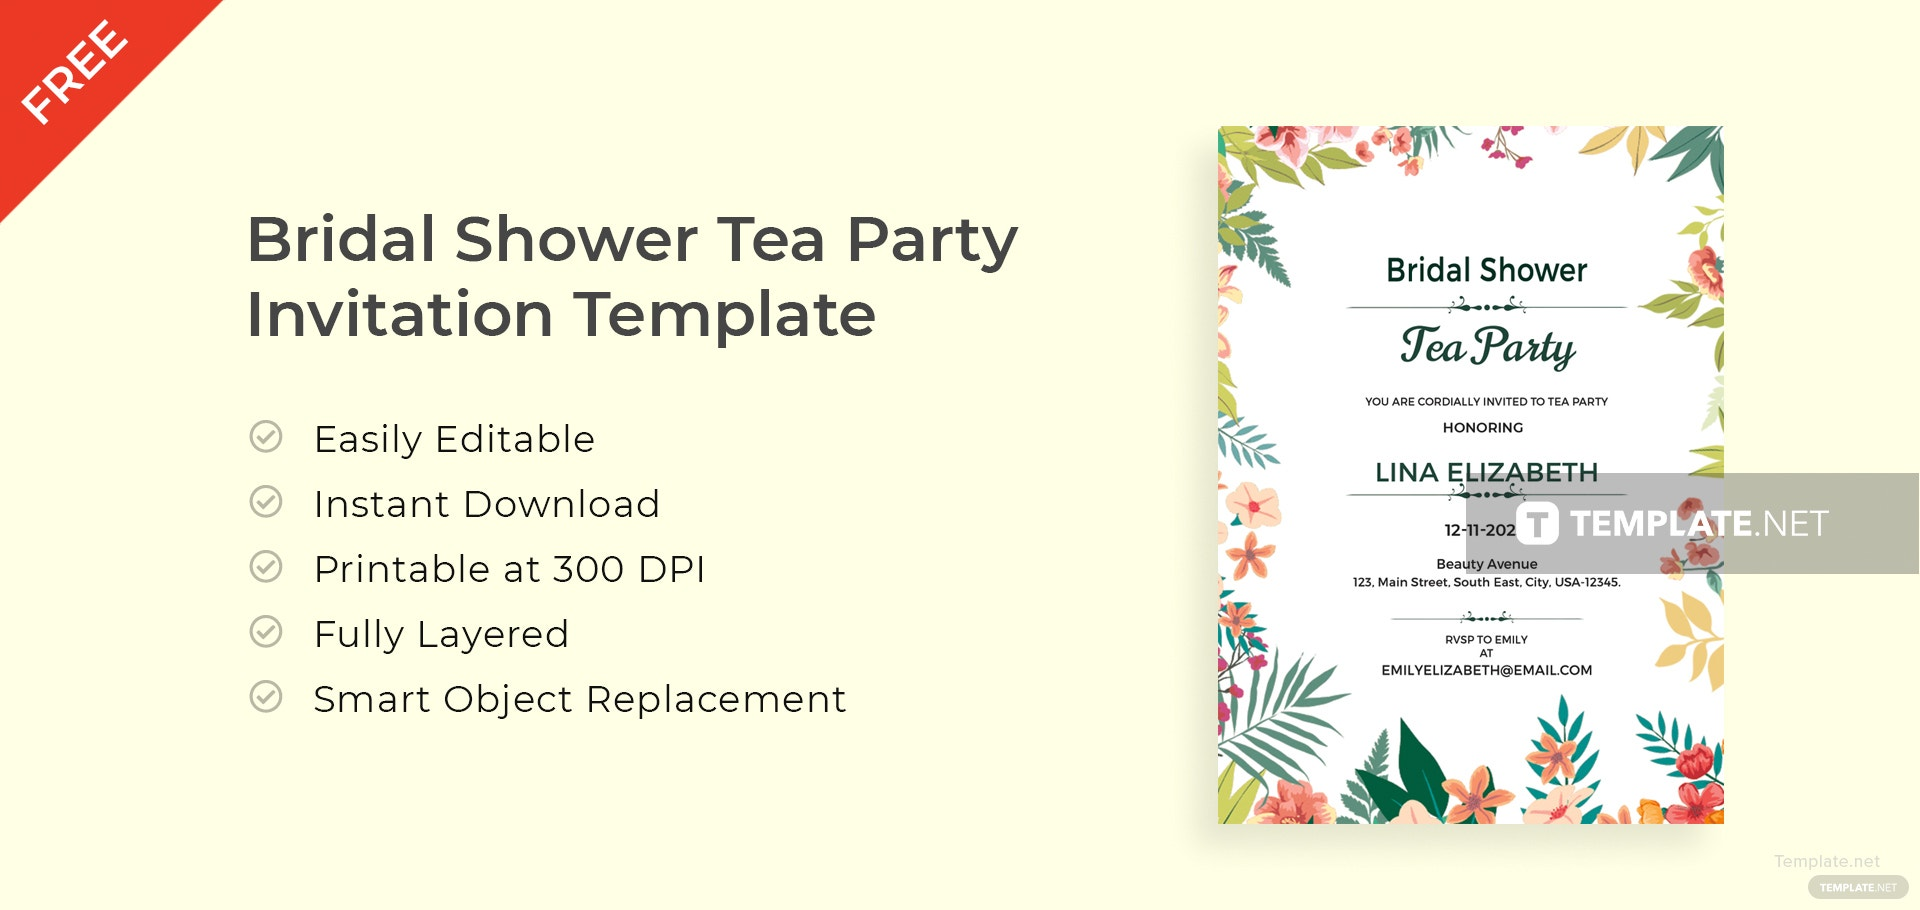 Free Bridal Shower Tea Party Invitation Template in Adobe Photoshop